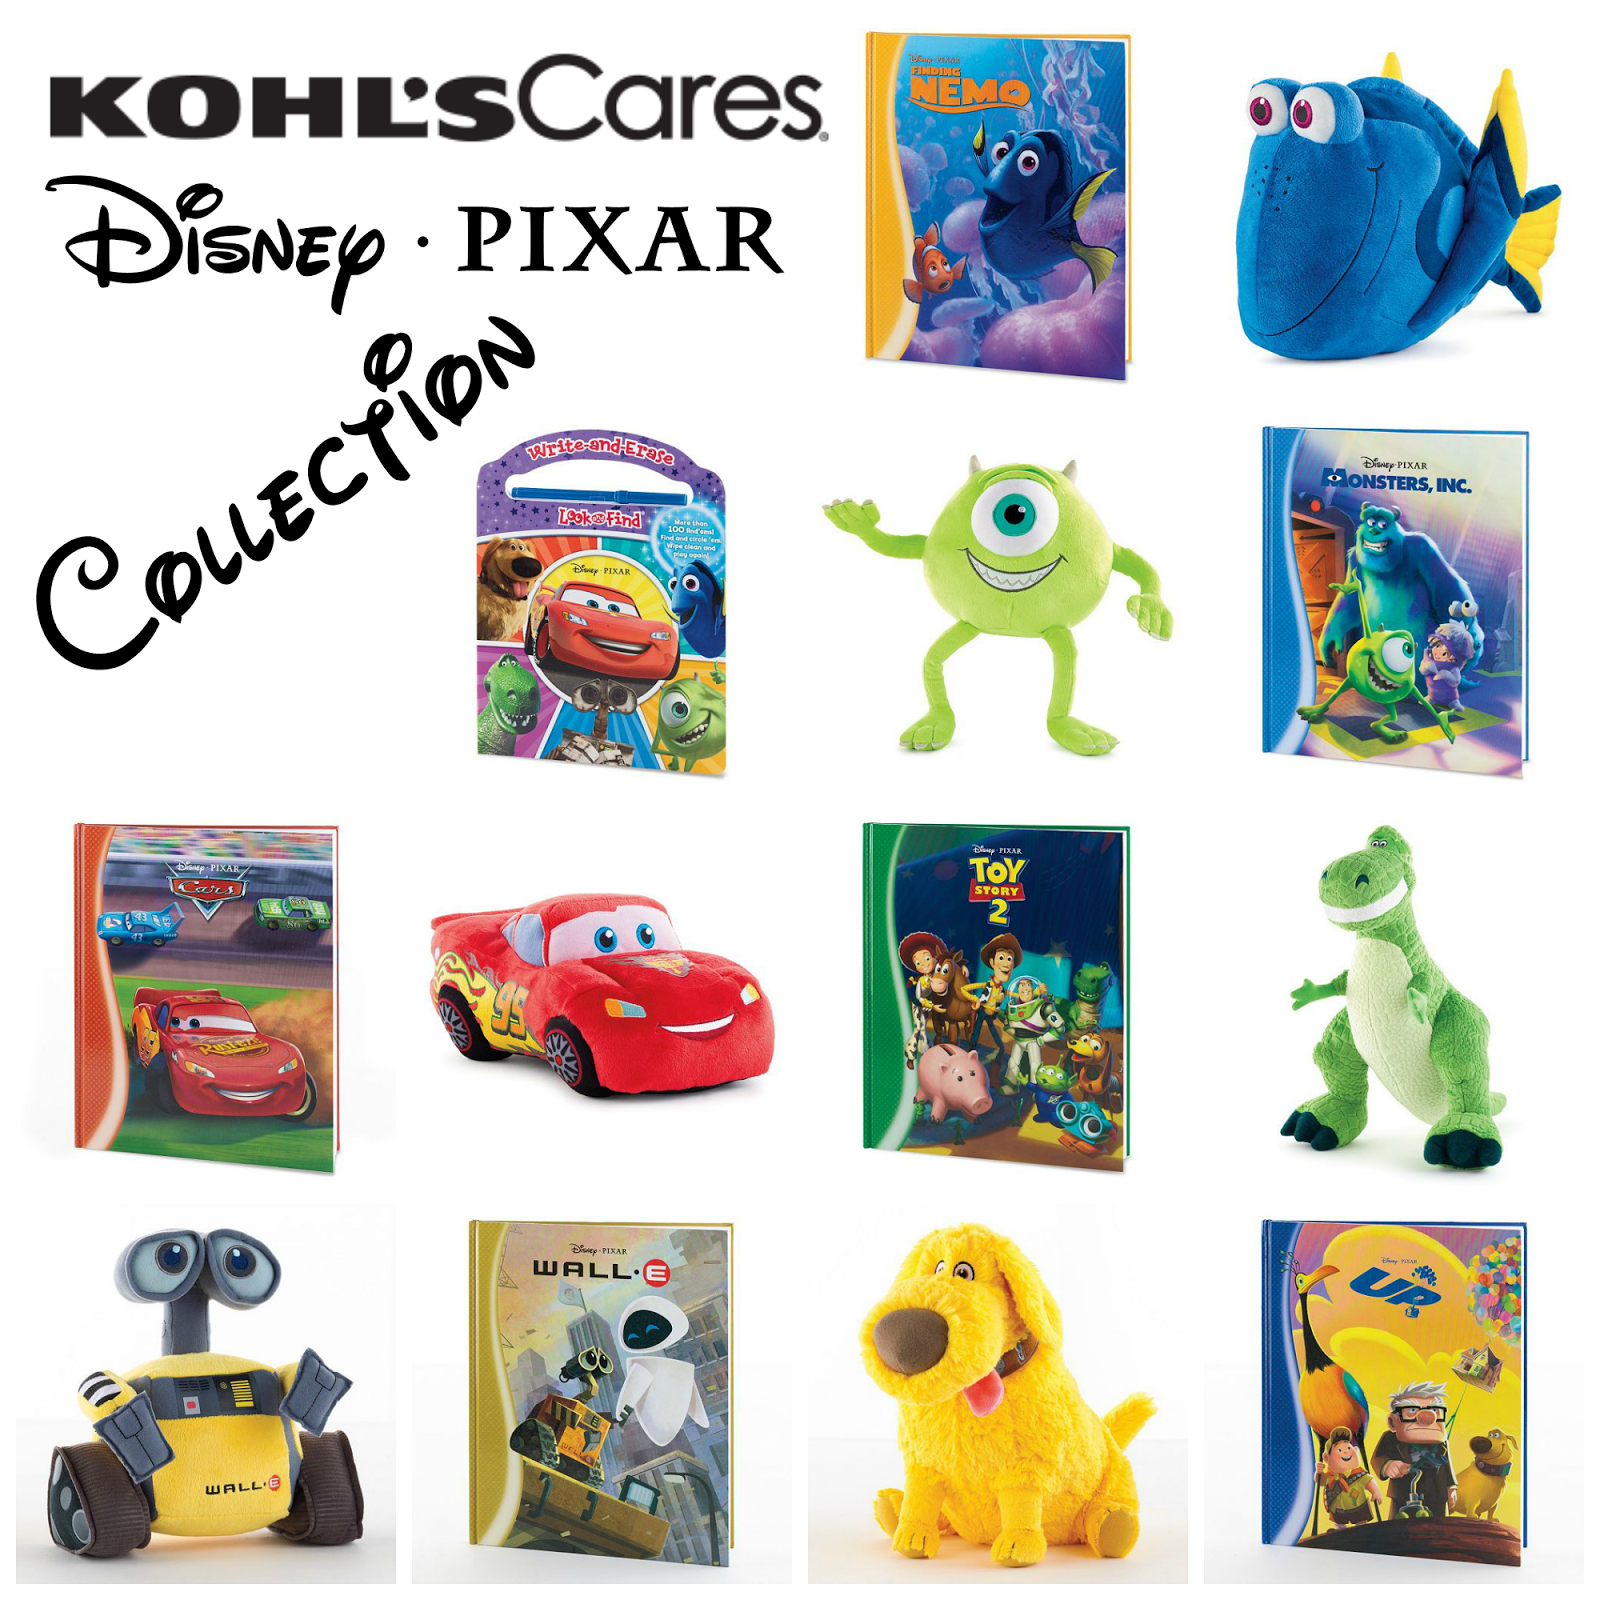 Kohl's Truly Cares: Disney Pixar Collection‏ - #KohlsCares ...